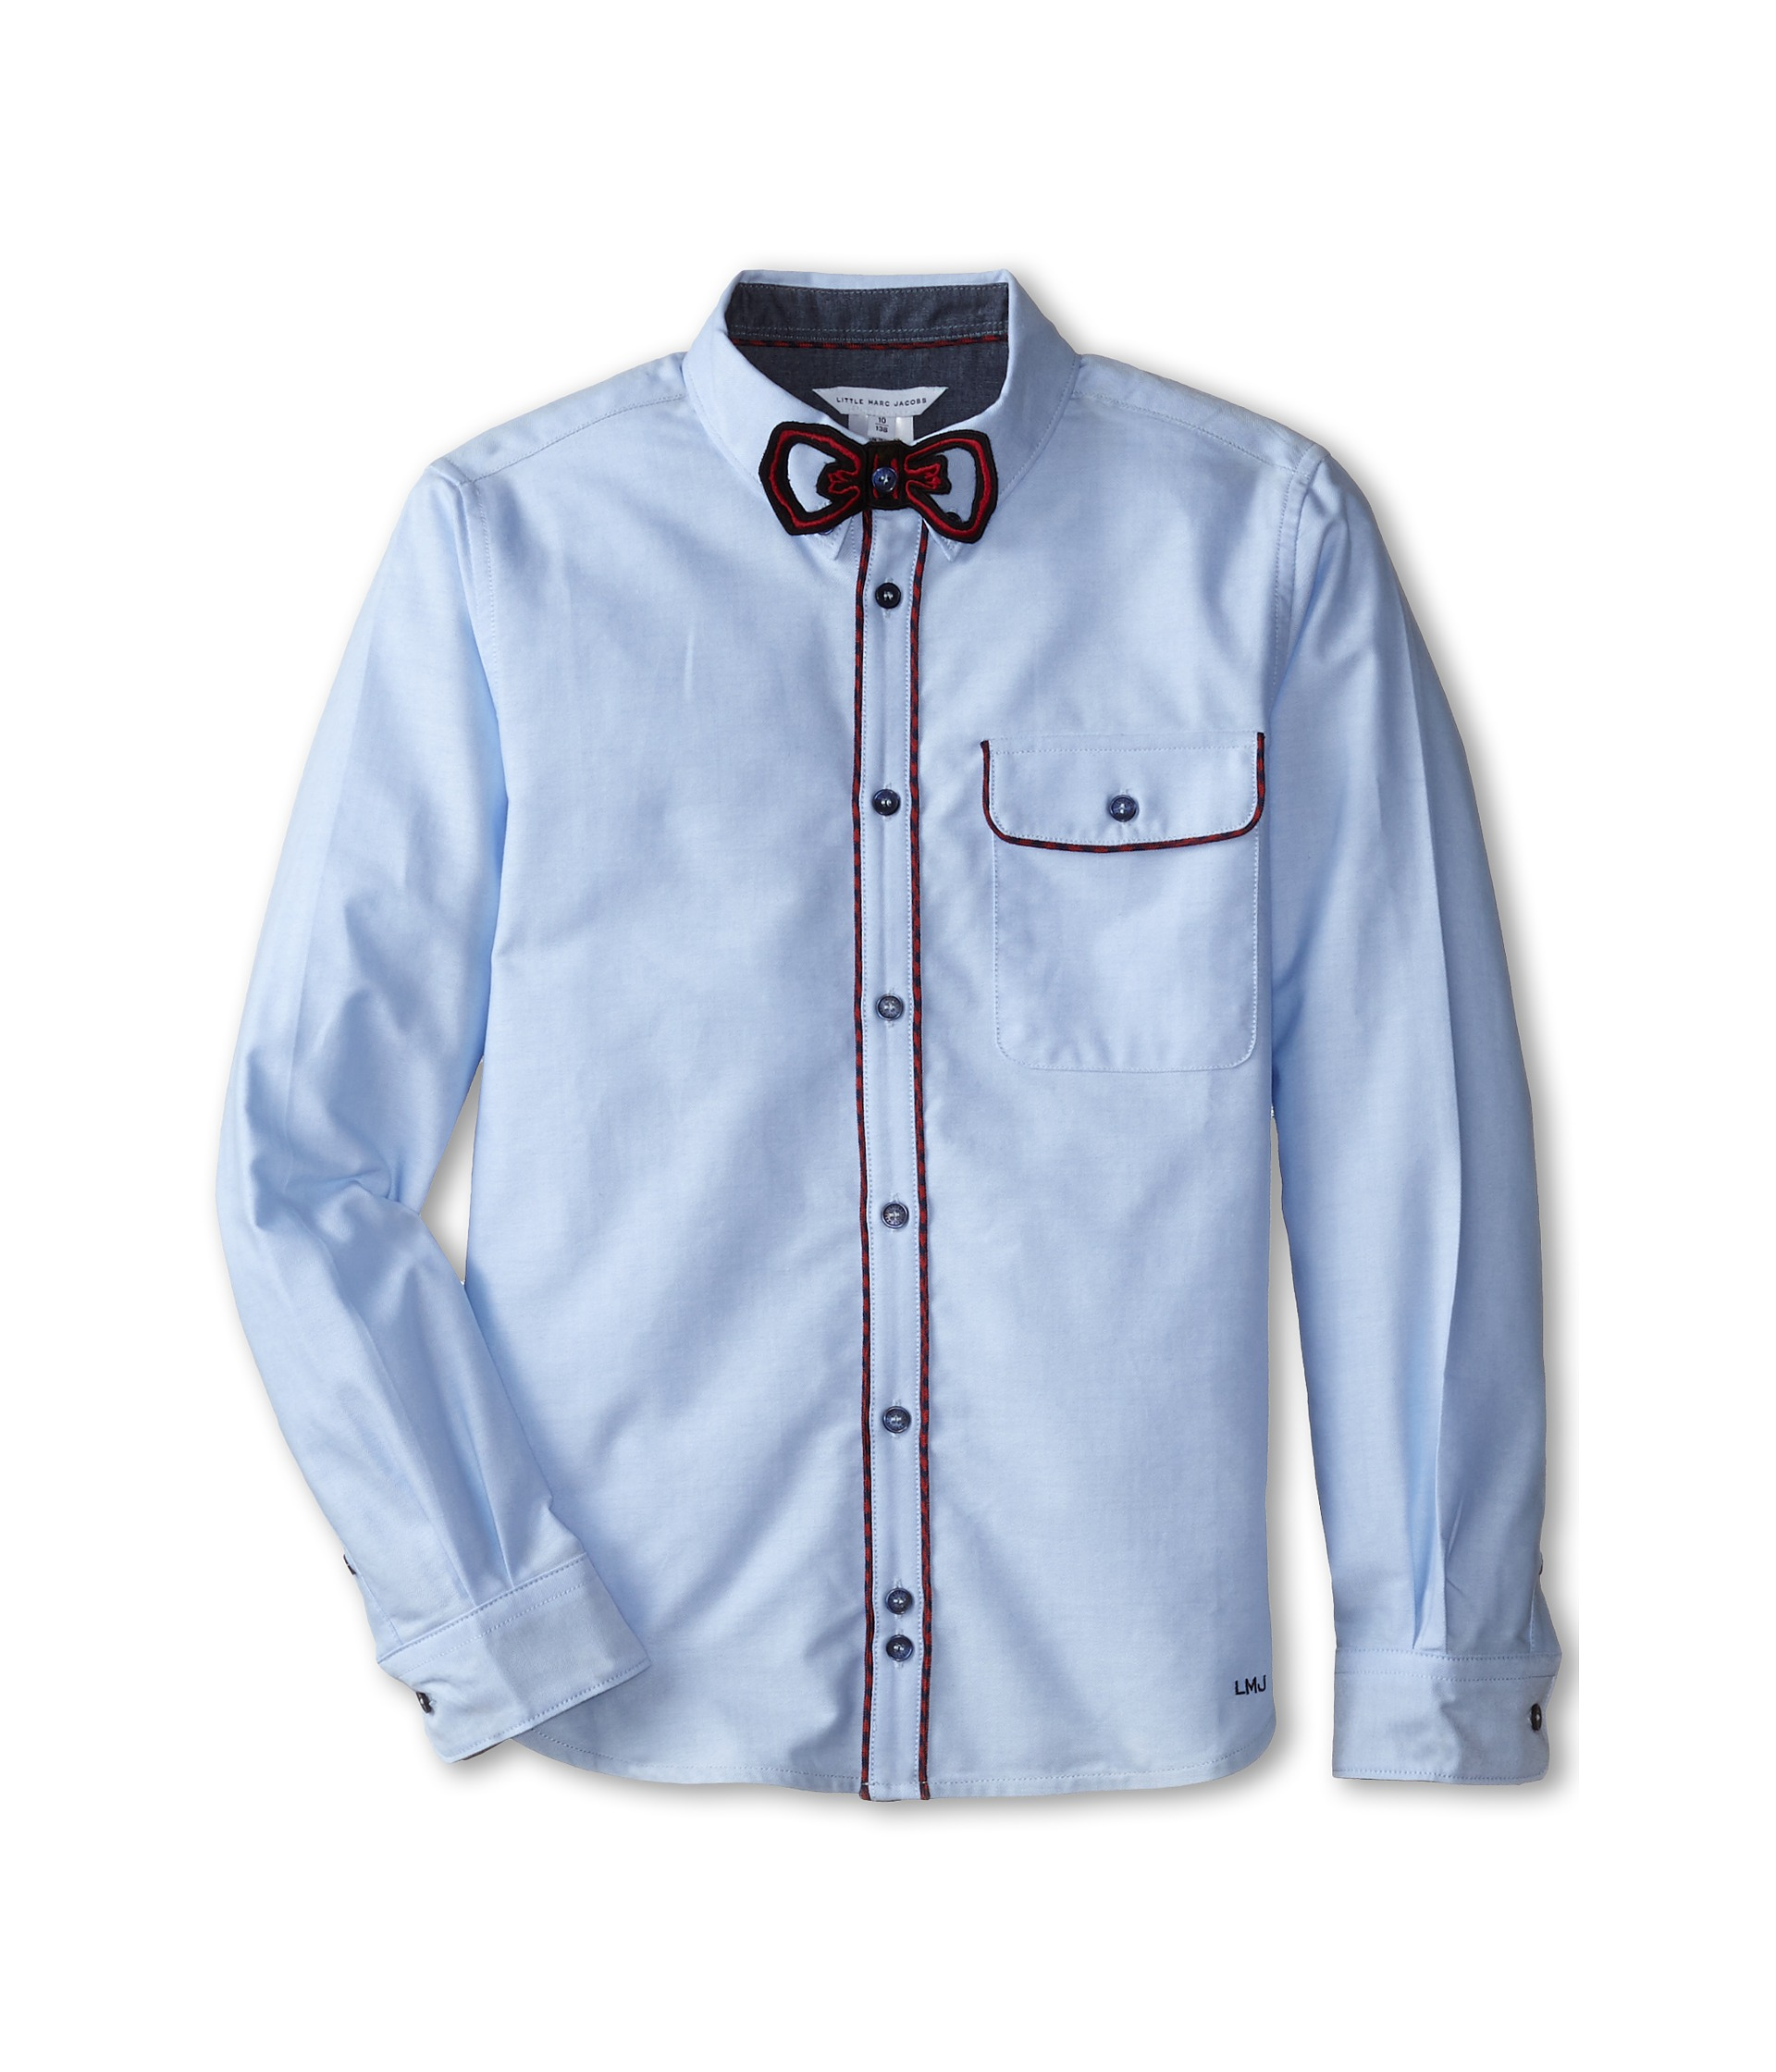 Big W Bow Tie Little Marc Jacobs Shirt With Removable Bow Tie Big Kids